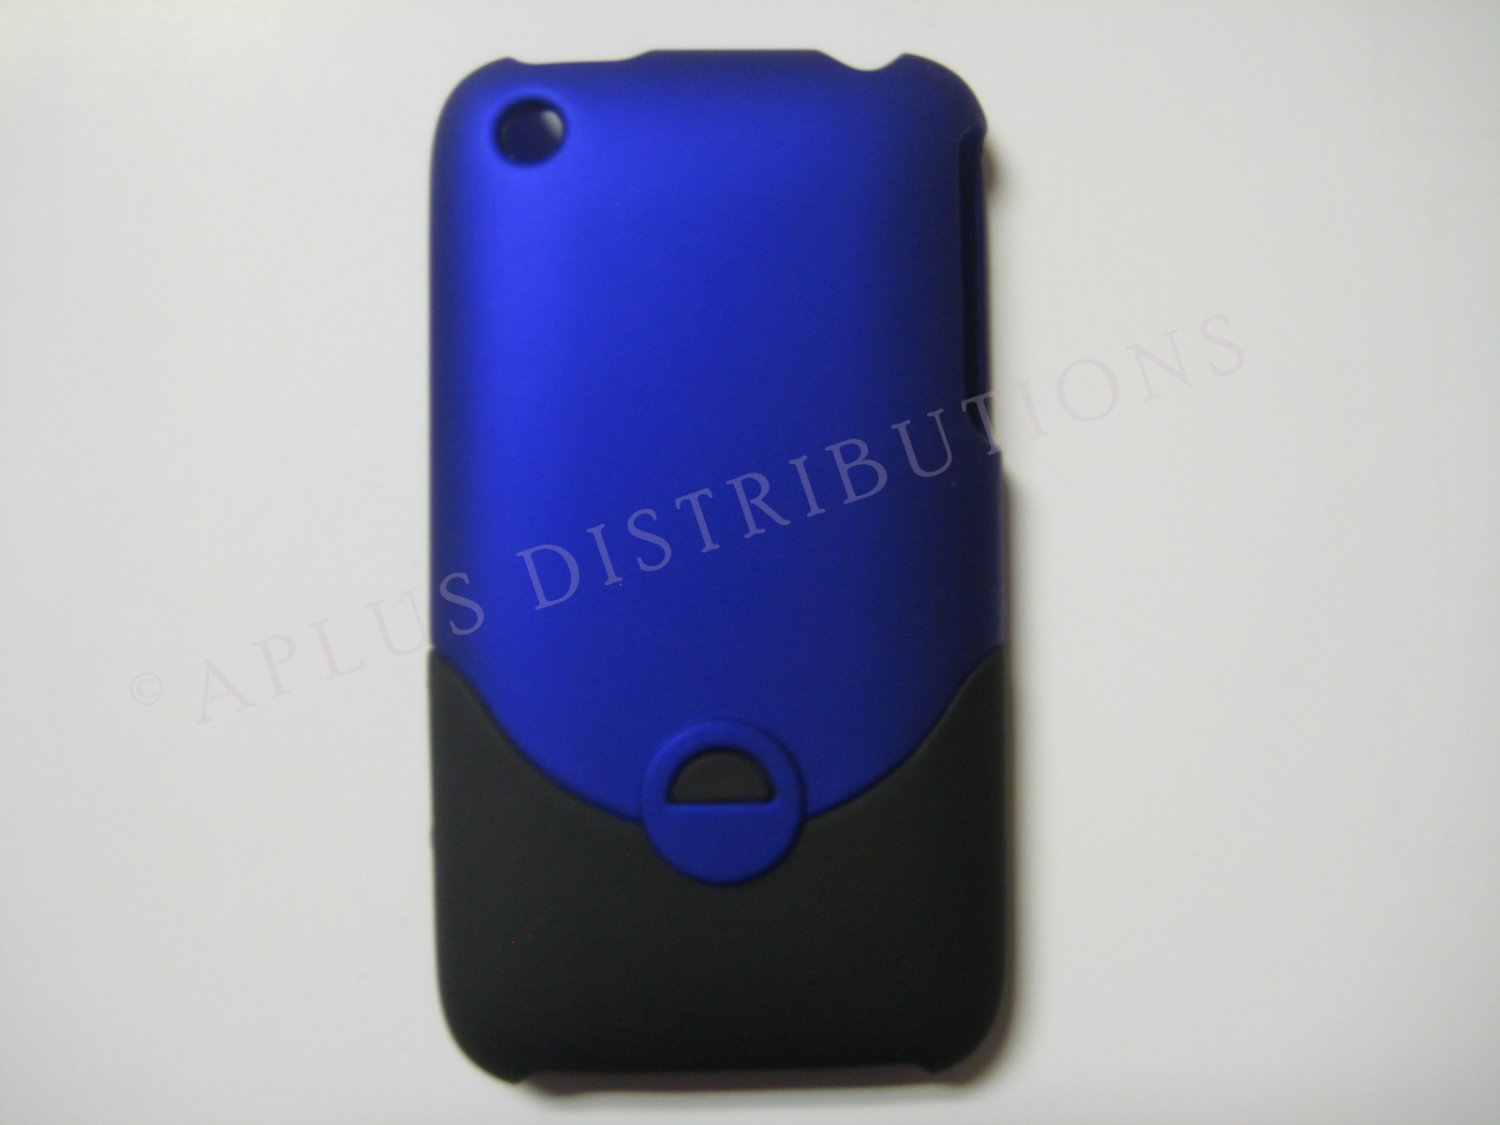 New Dark Blue Rubberized Slider Design Hard Protective Cover For iPhone 3G 3GS - (0095)